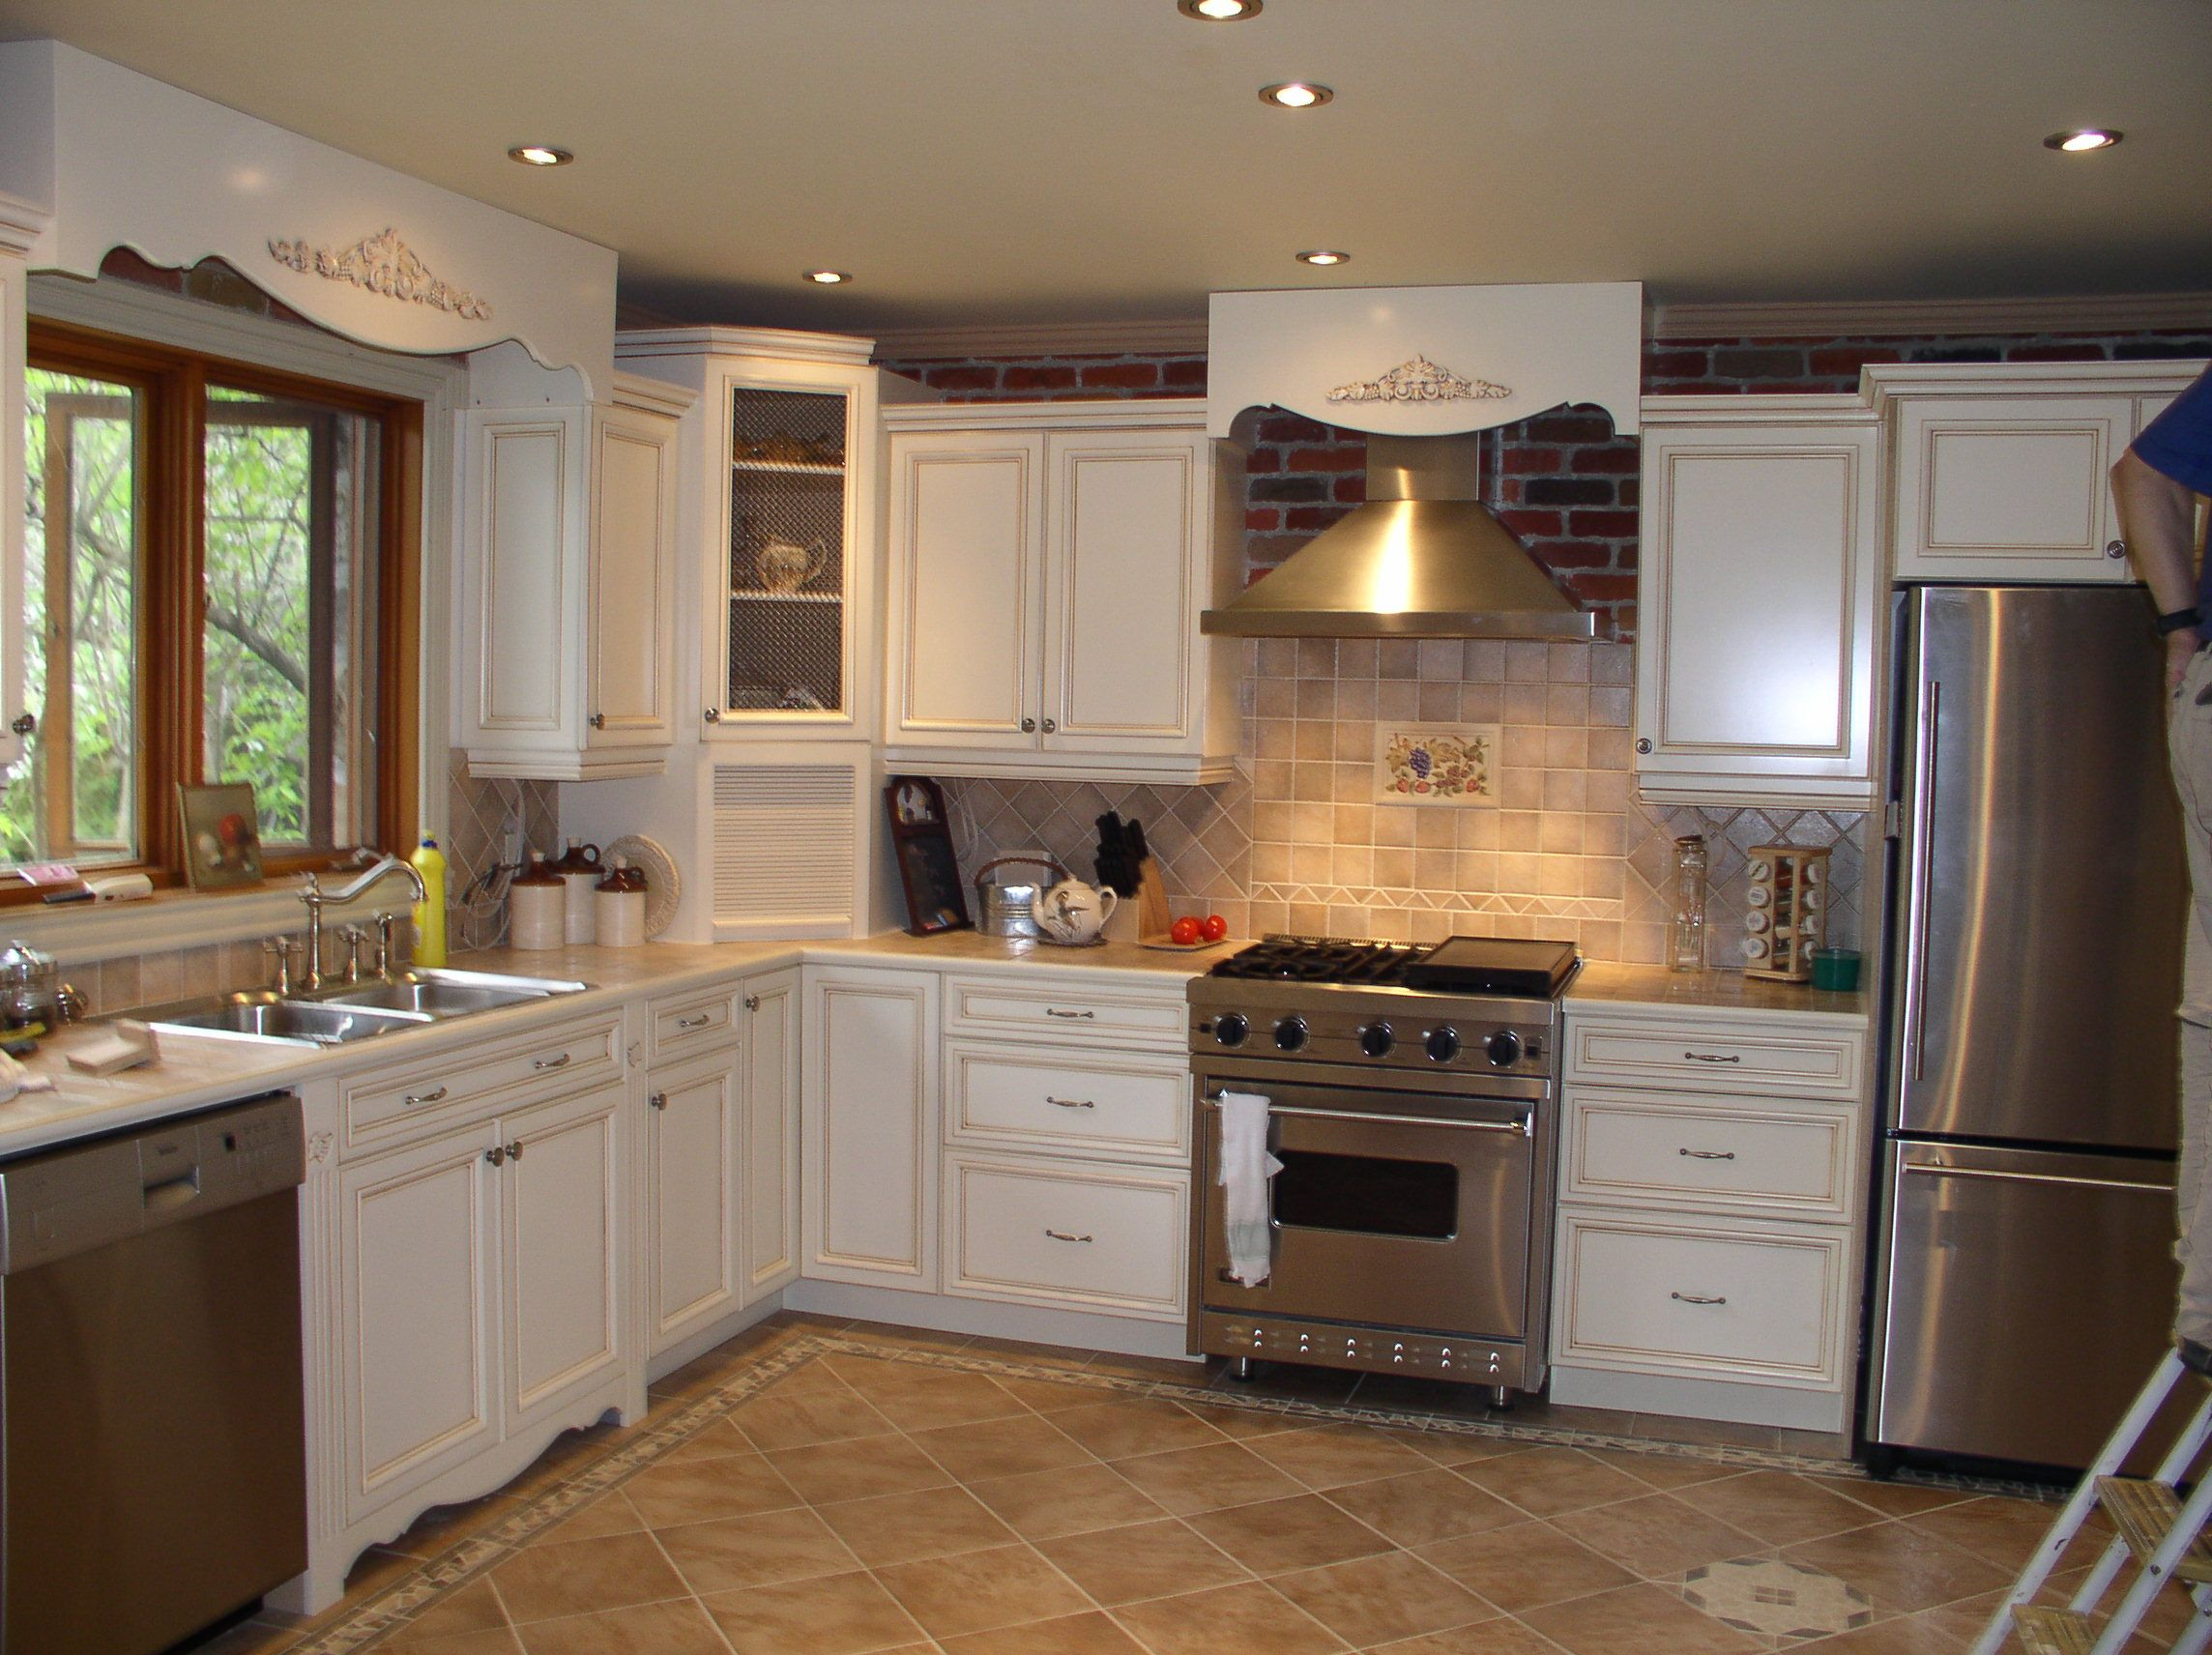 Best Kitchen Gallery: Kitchen Ideas Kitchen Remodeling Ideas Home Improvement Remodeling of Remodeling Kitchen Cabinets on rachelxblog.com